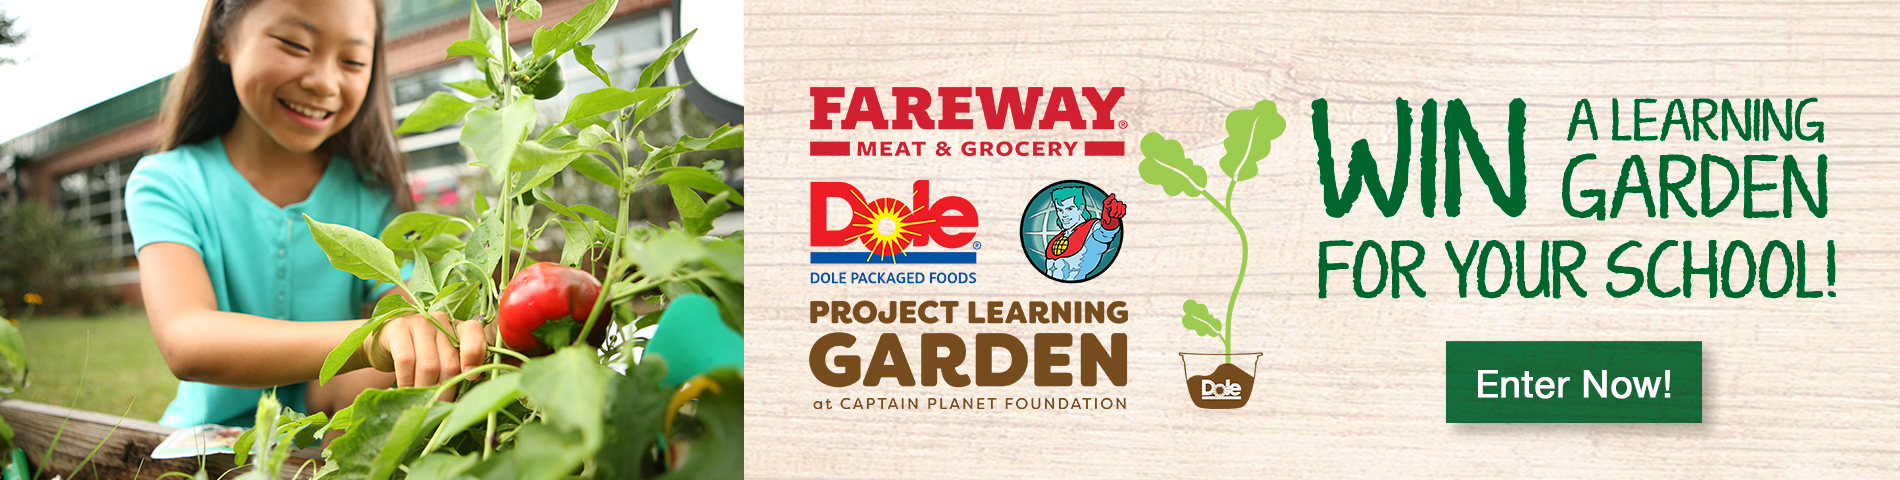 Learn more about dole garden